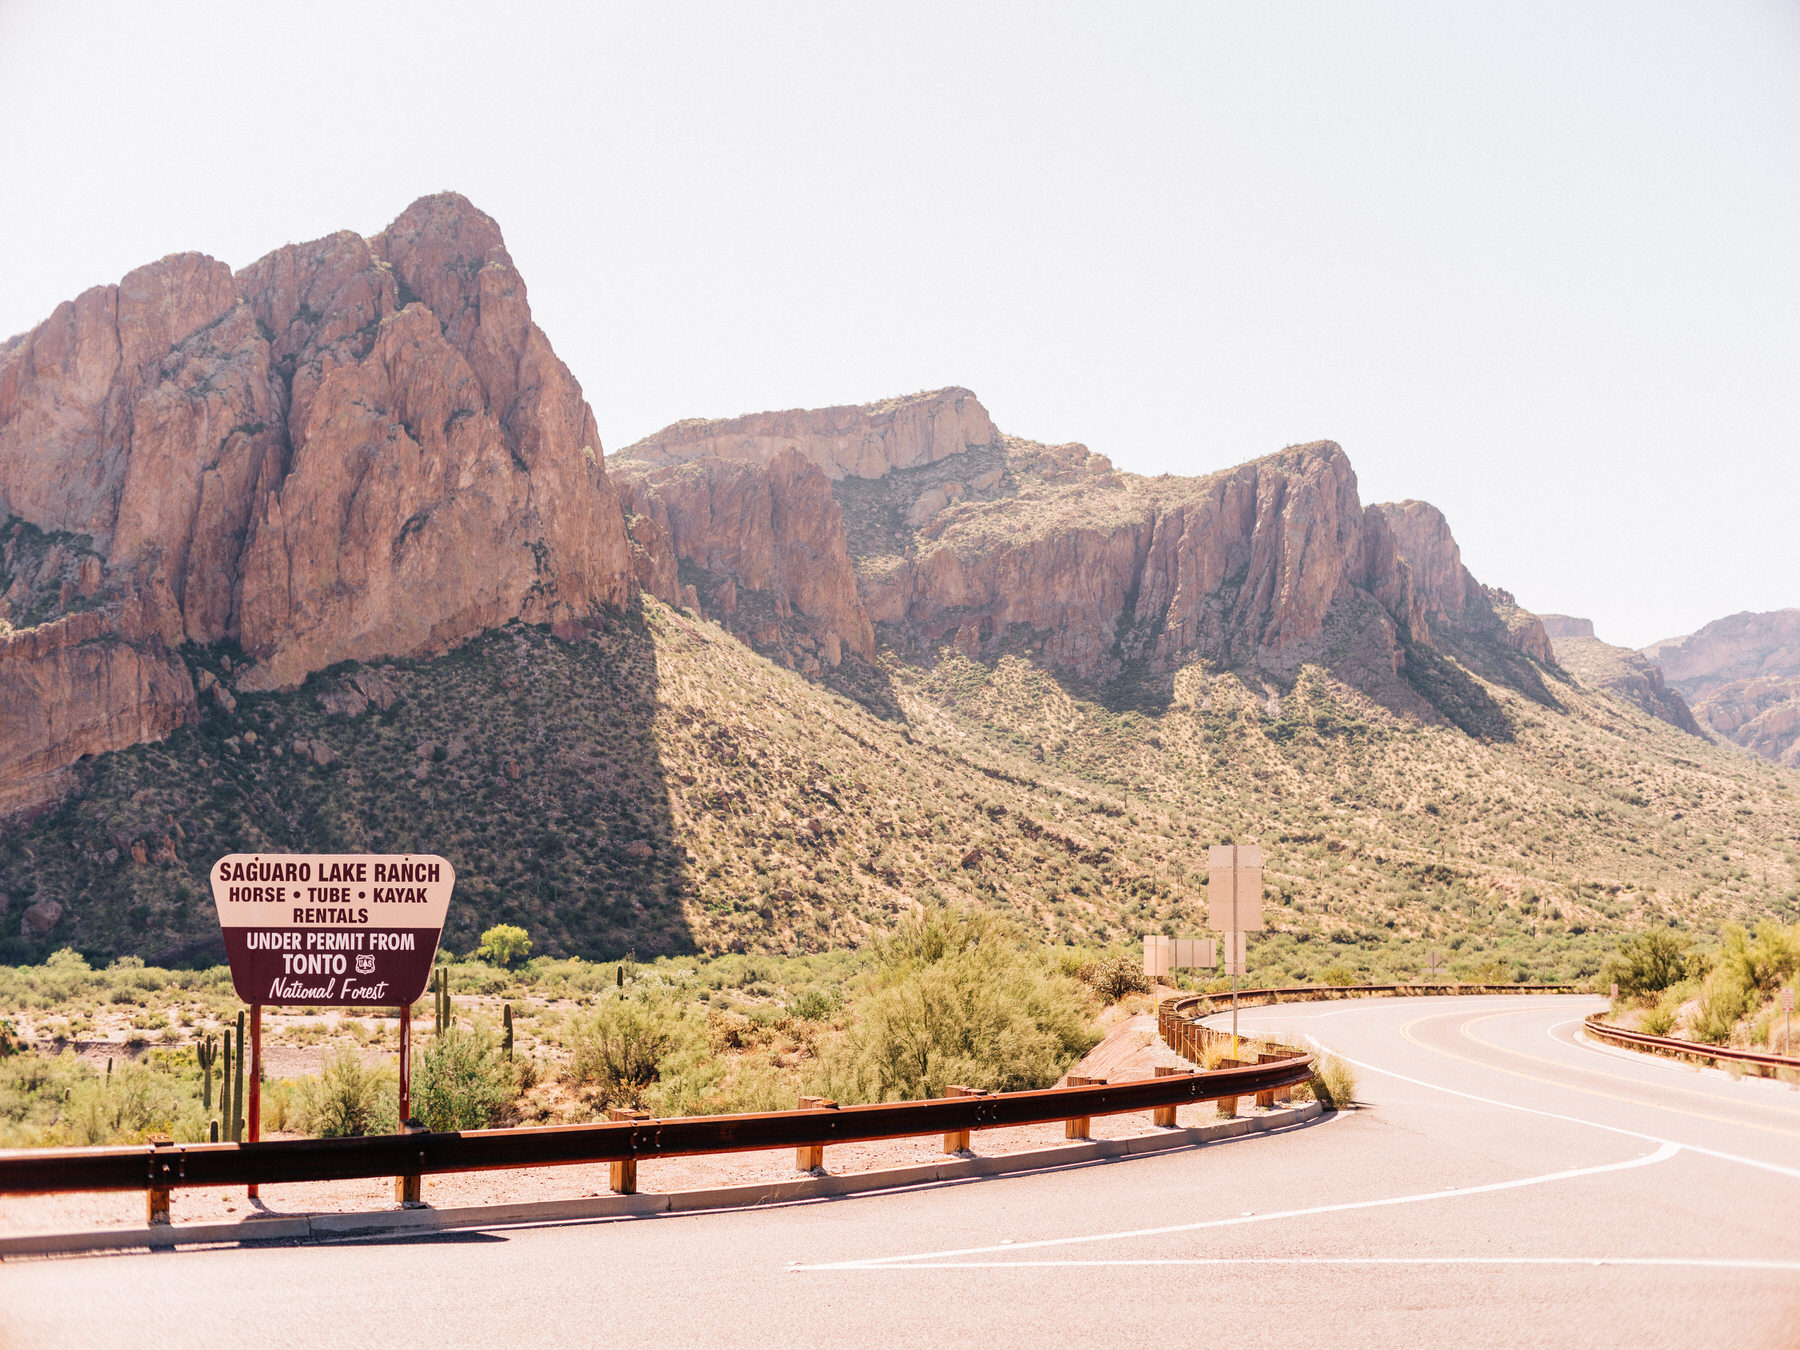 Saguaro Lake Ranch in the Tonto National Forest